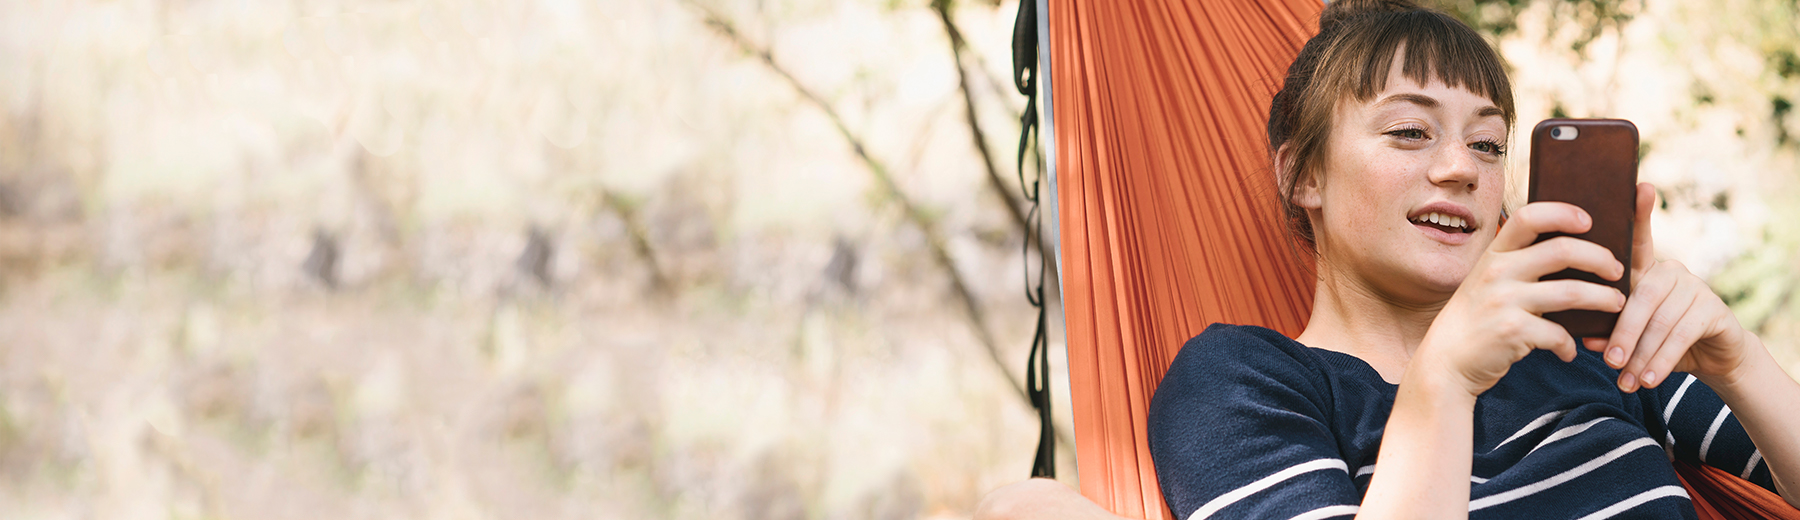 Young woman on her phone while in a hammock